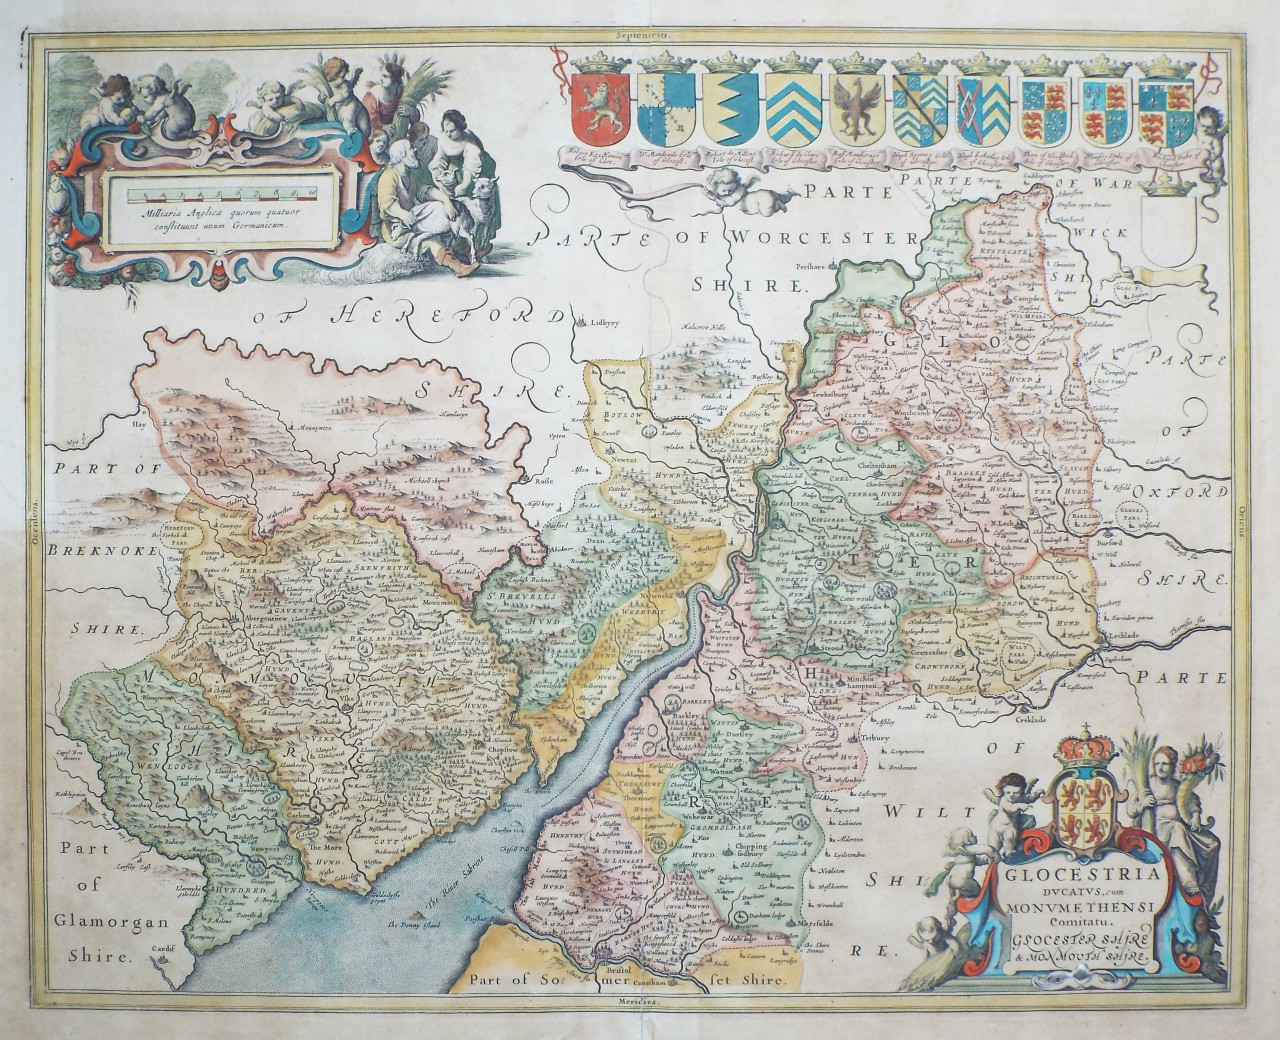 Map of Gloucestershire & Monmouthshire - Jansson